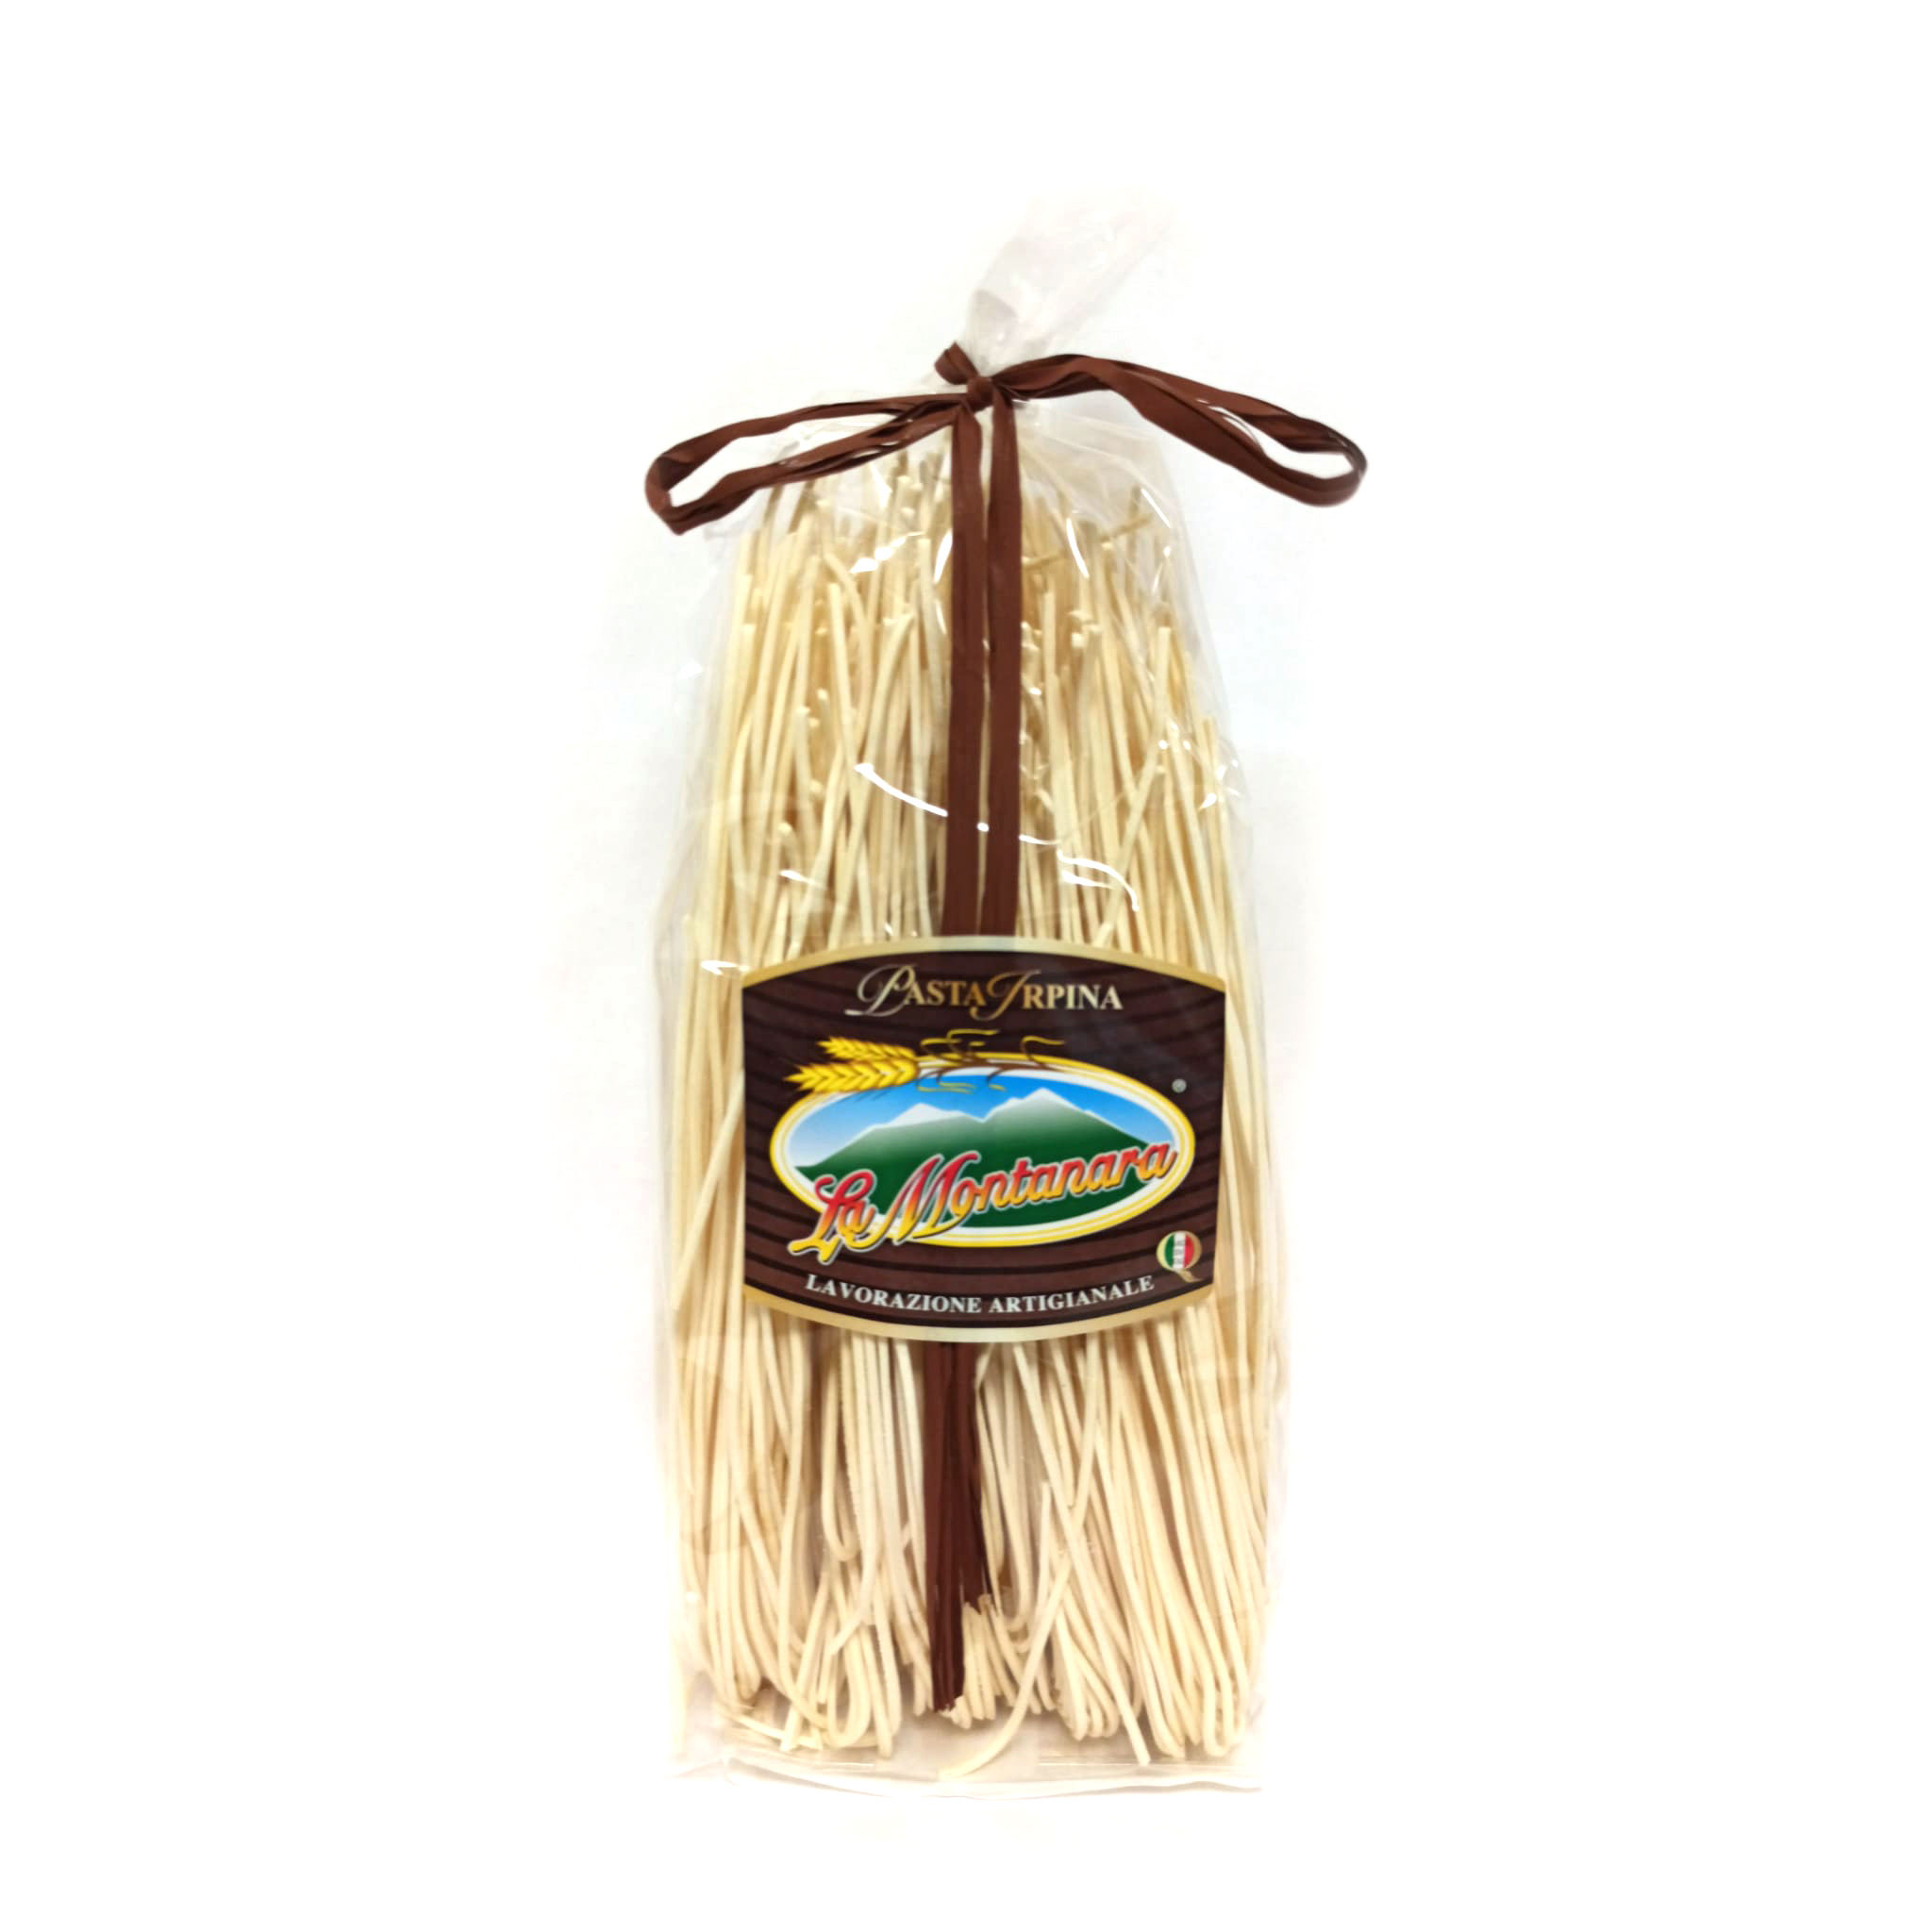 ARTISANAL DRY PASTA MADE IN ITALY - HOME MADE WITH ITALIAN DURUM WHEAT 100% - SPAGHETTI ALLA CHITARRA in Bag of 0,5 KG. - Box w